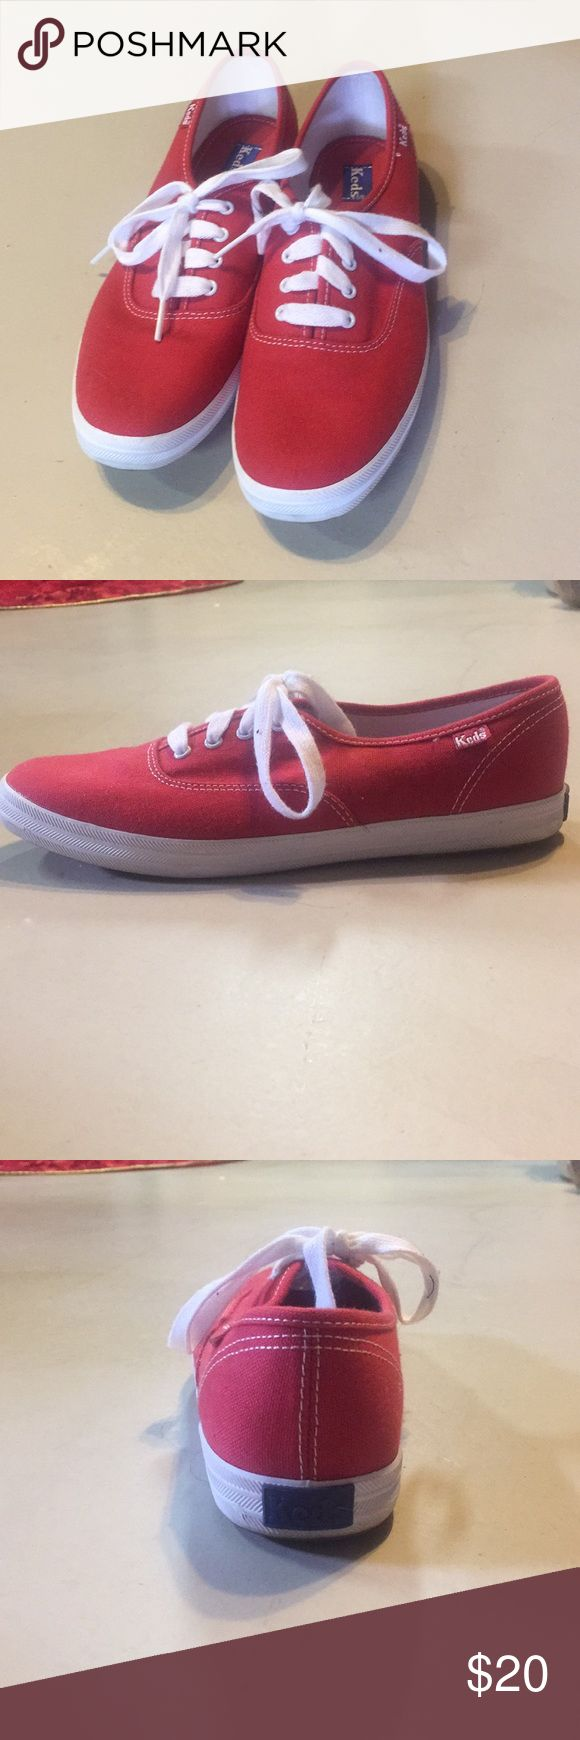 Red Keds Never worn! Red Keds. Size 7.5 Keds Shoes Sneakers